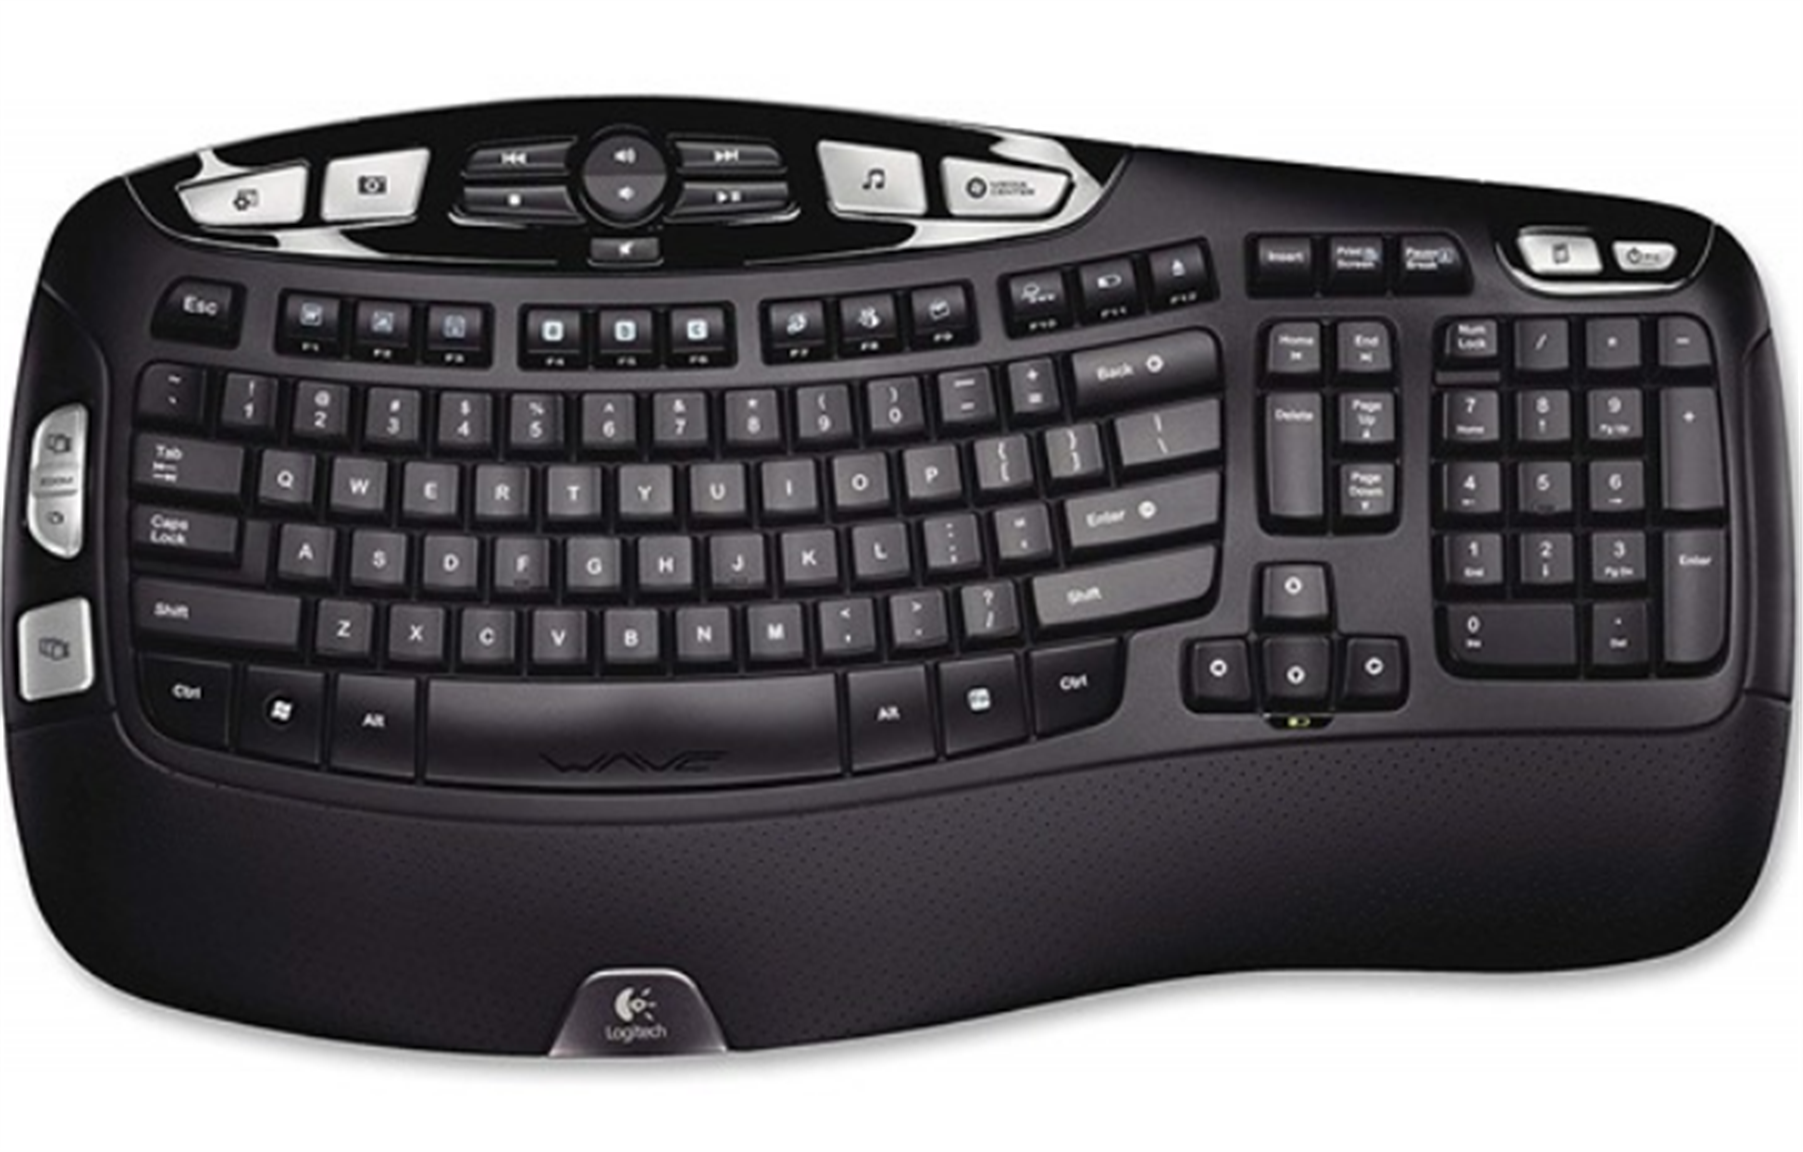 Computers.Woot – Logitech K350 2.4Ghz Wireless Keyboard Only $18.99 + Free Shipping (Prime Members)